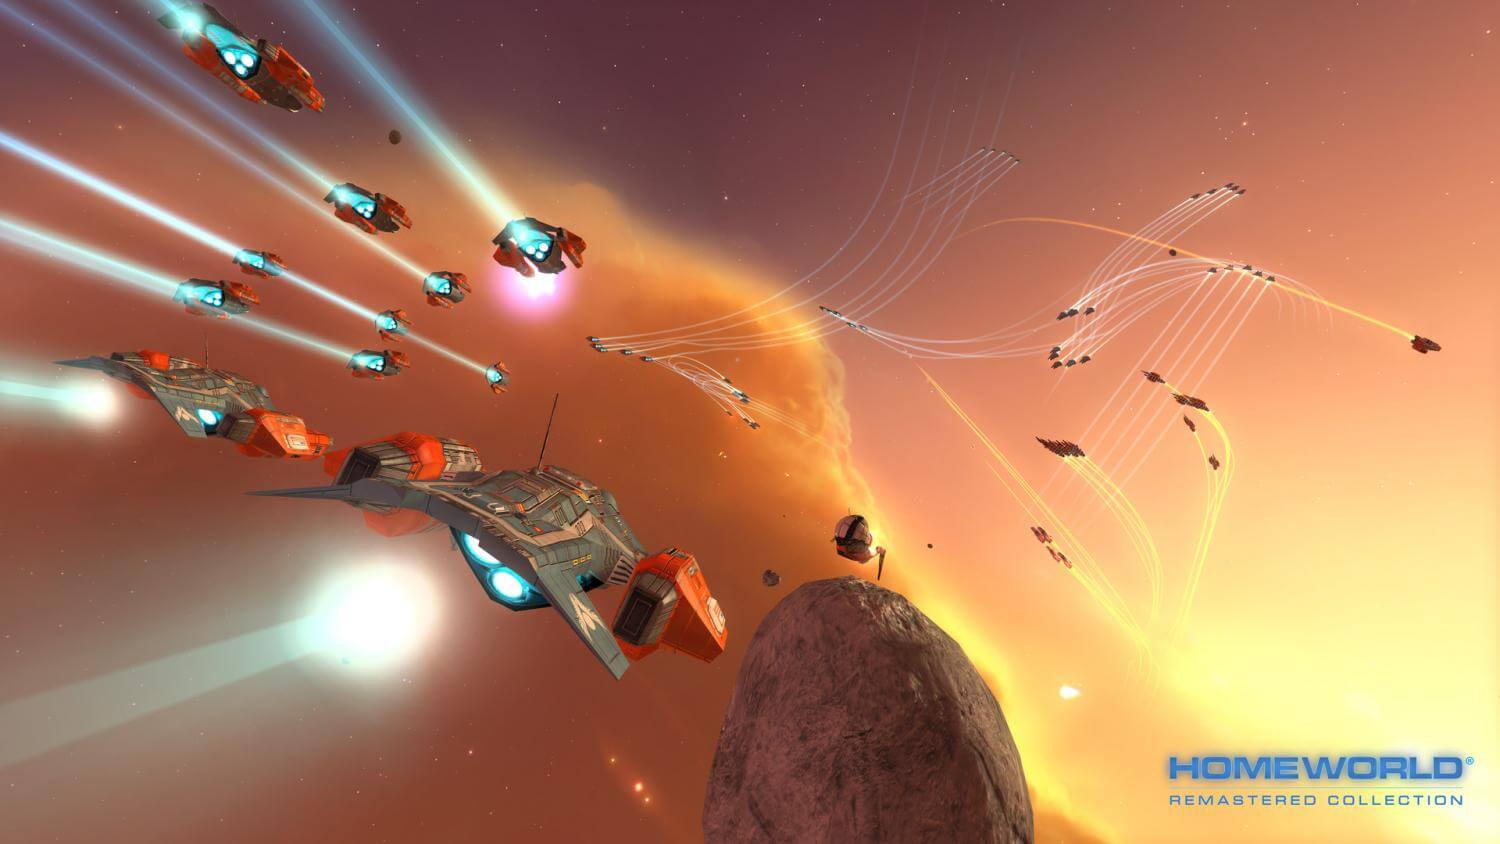 Homeworld Remastered Collection Deluxe Edition